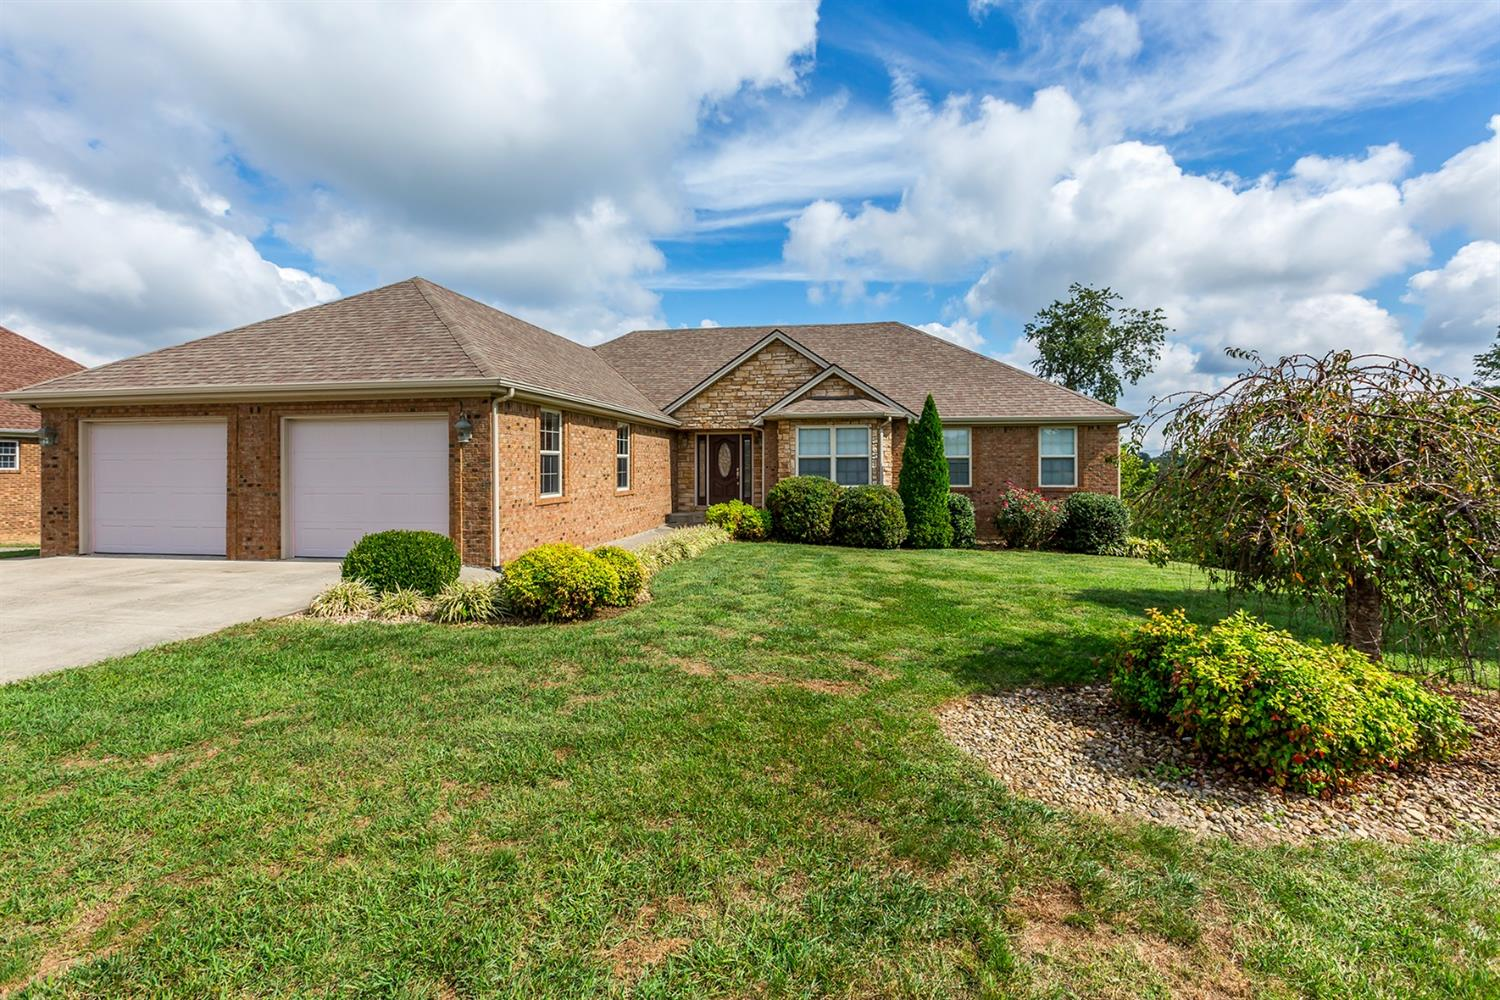 Home For Sale at 149 Castlewood Dr, Richmond, KY 40475